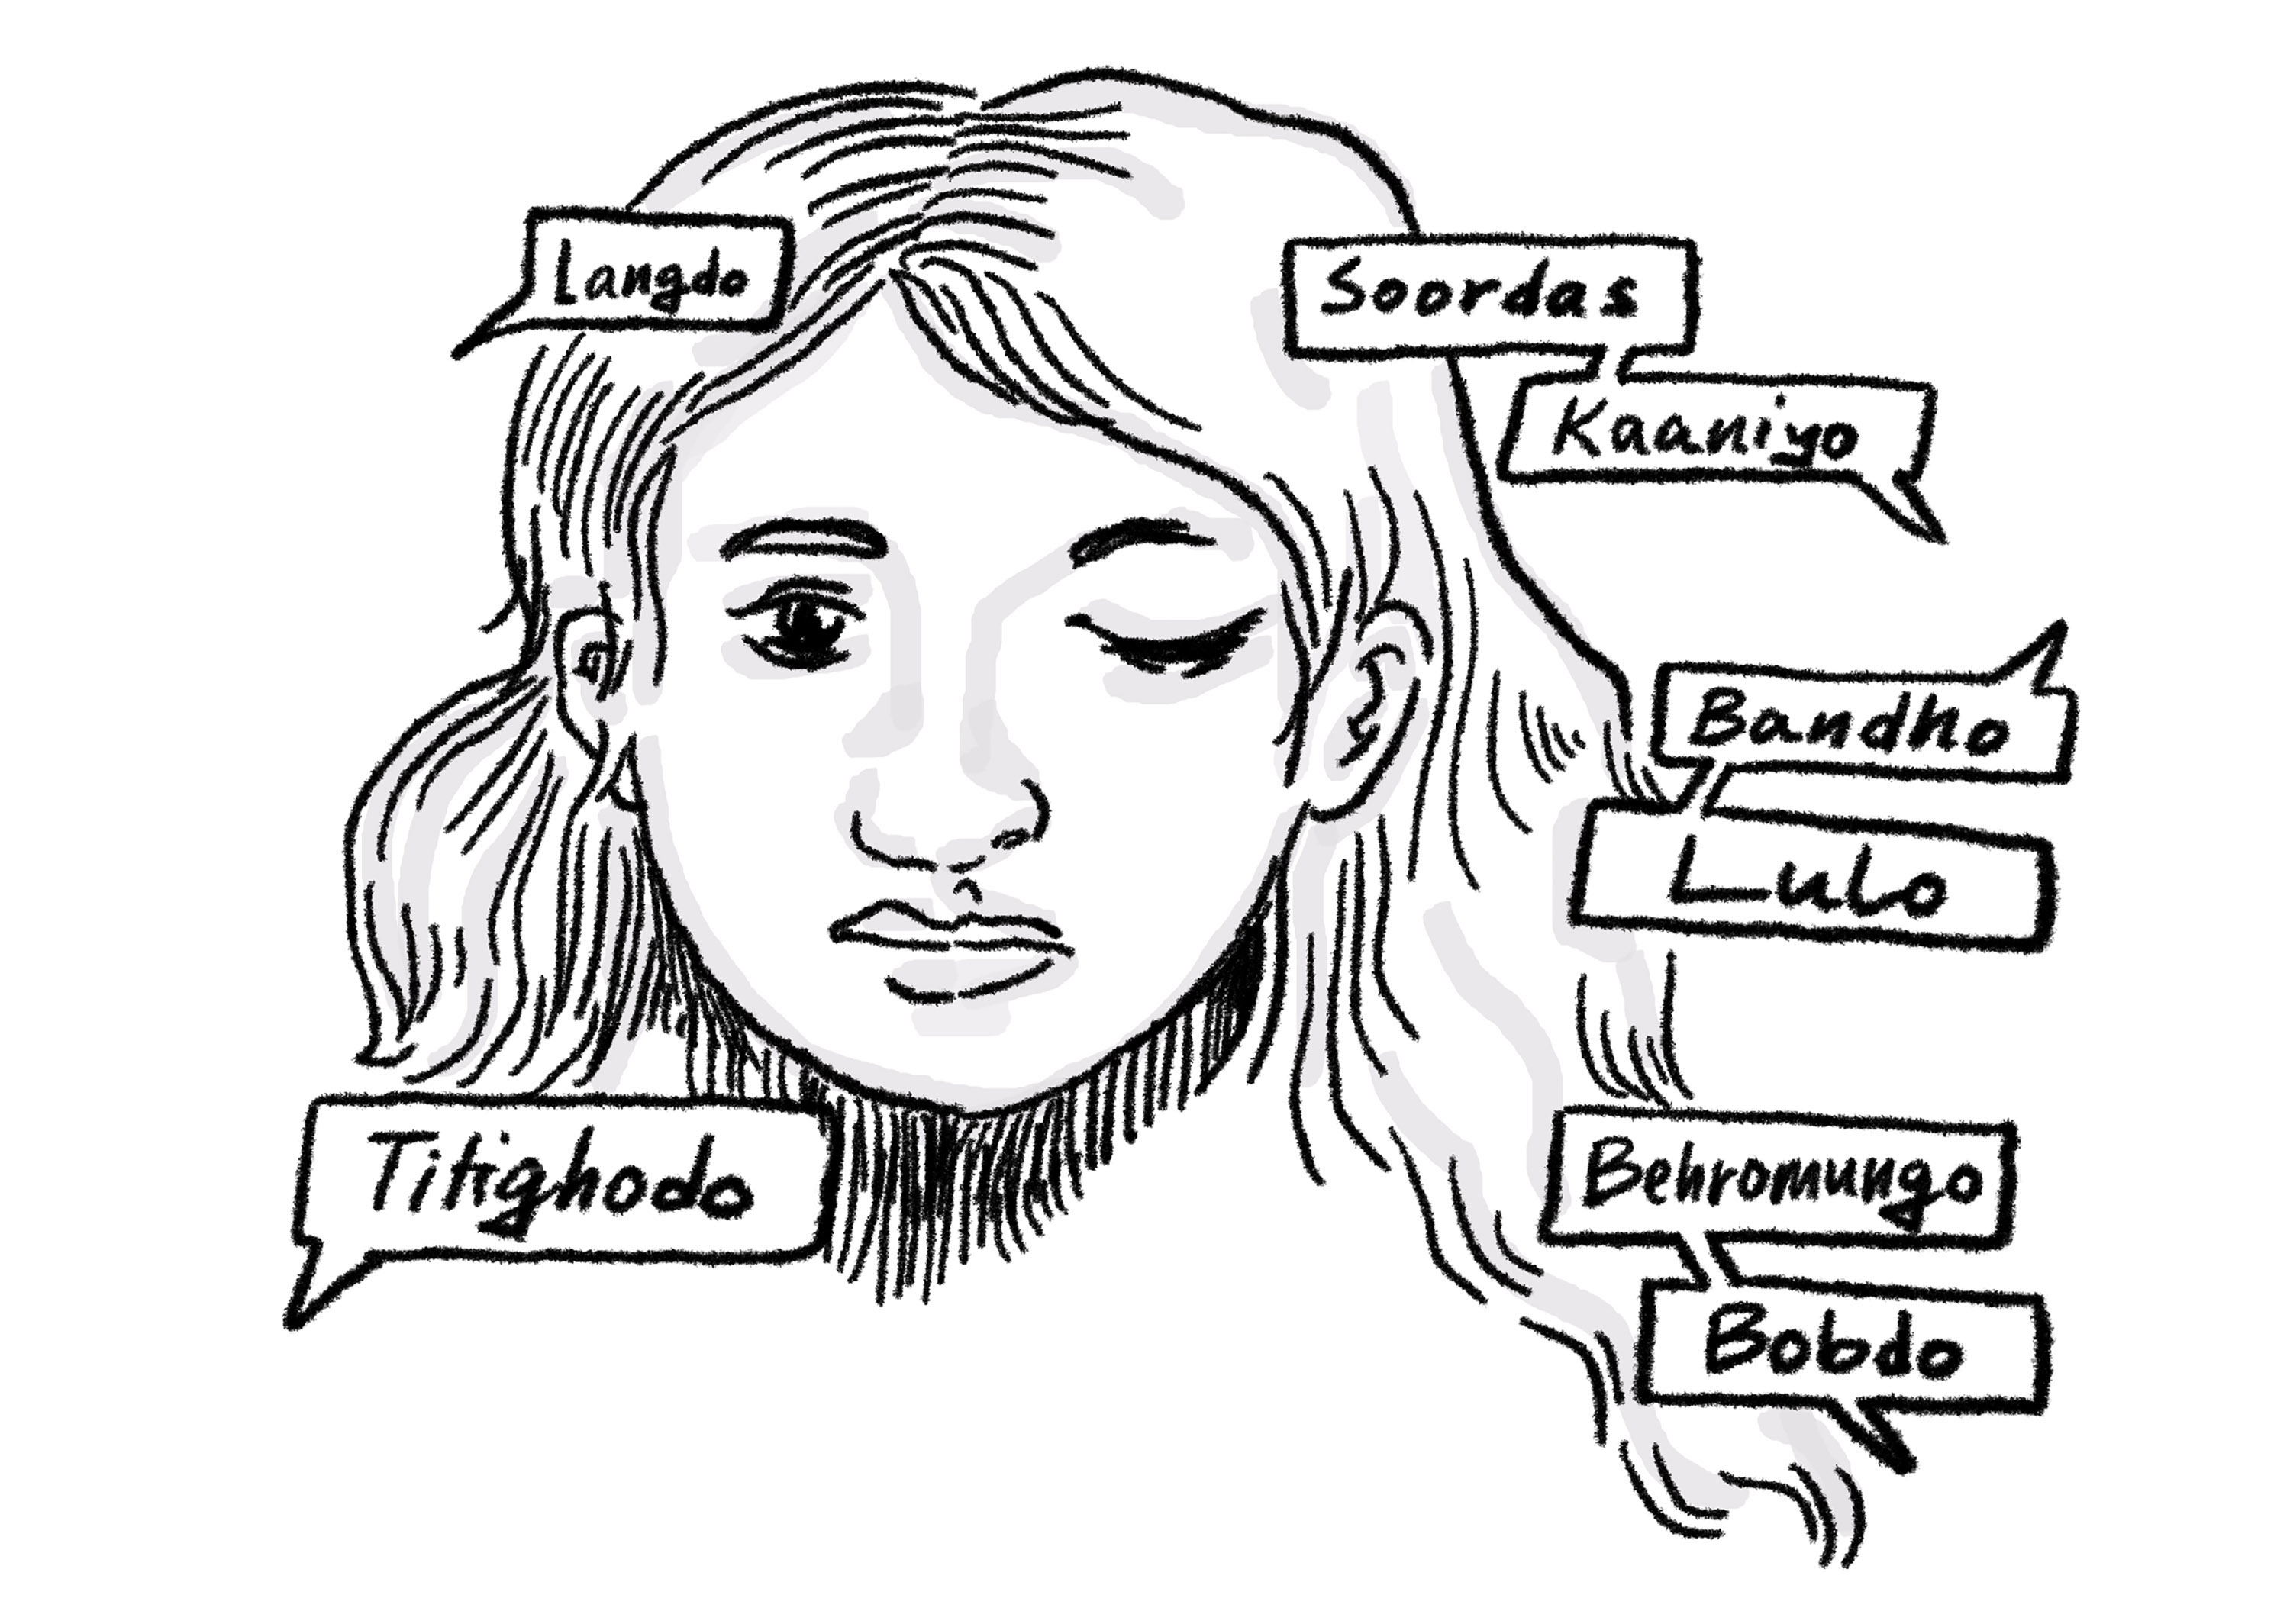 Drawing by Manali Jhinka Roy of the face of a young woman. One eye closed. She is surrounded by pejorative words used to refer to disabled people